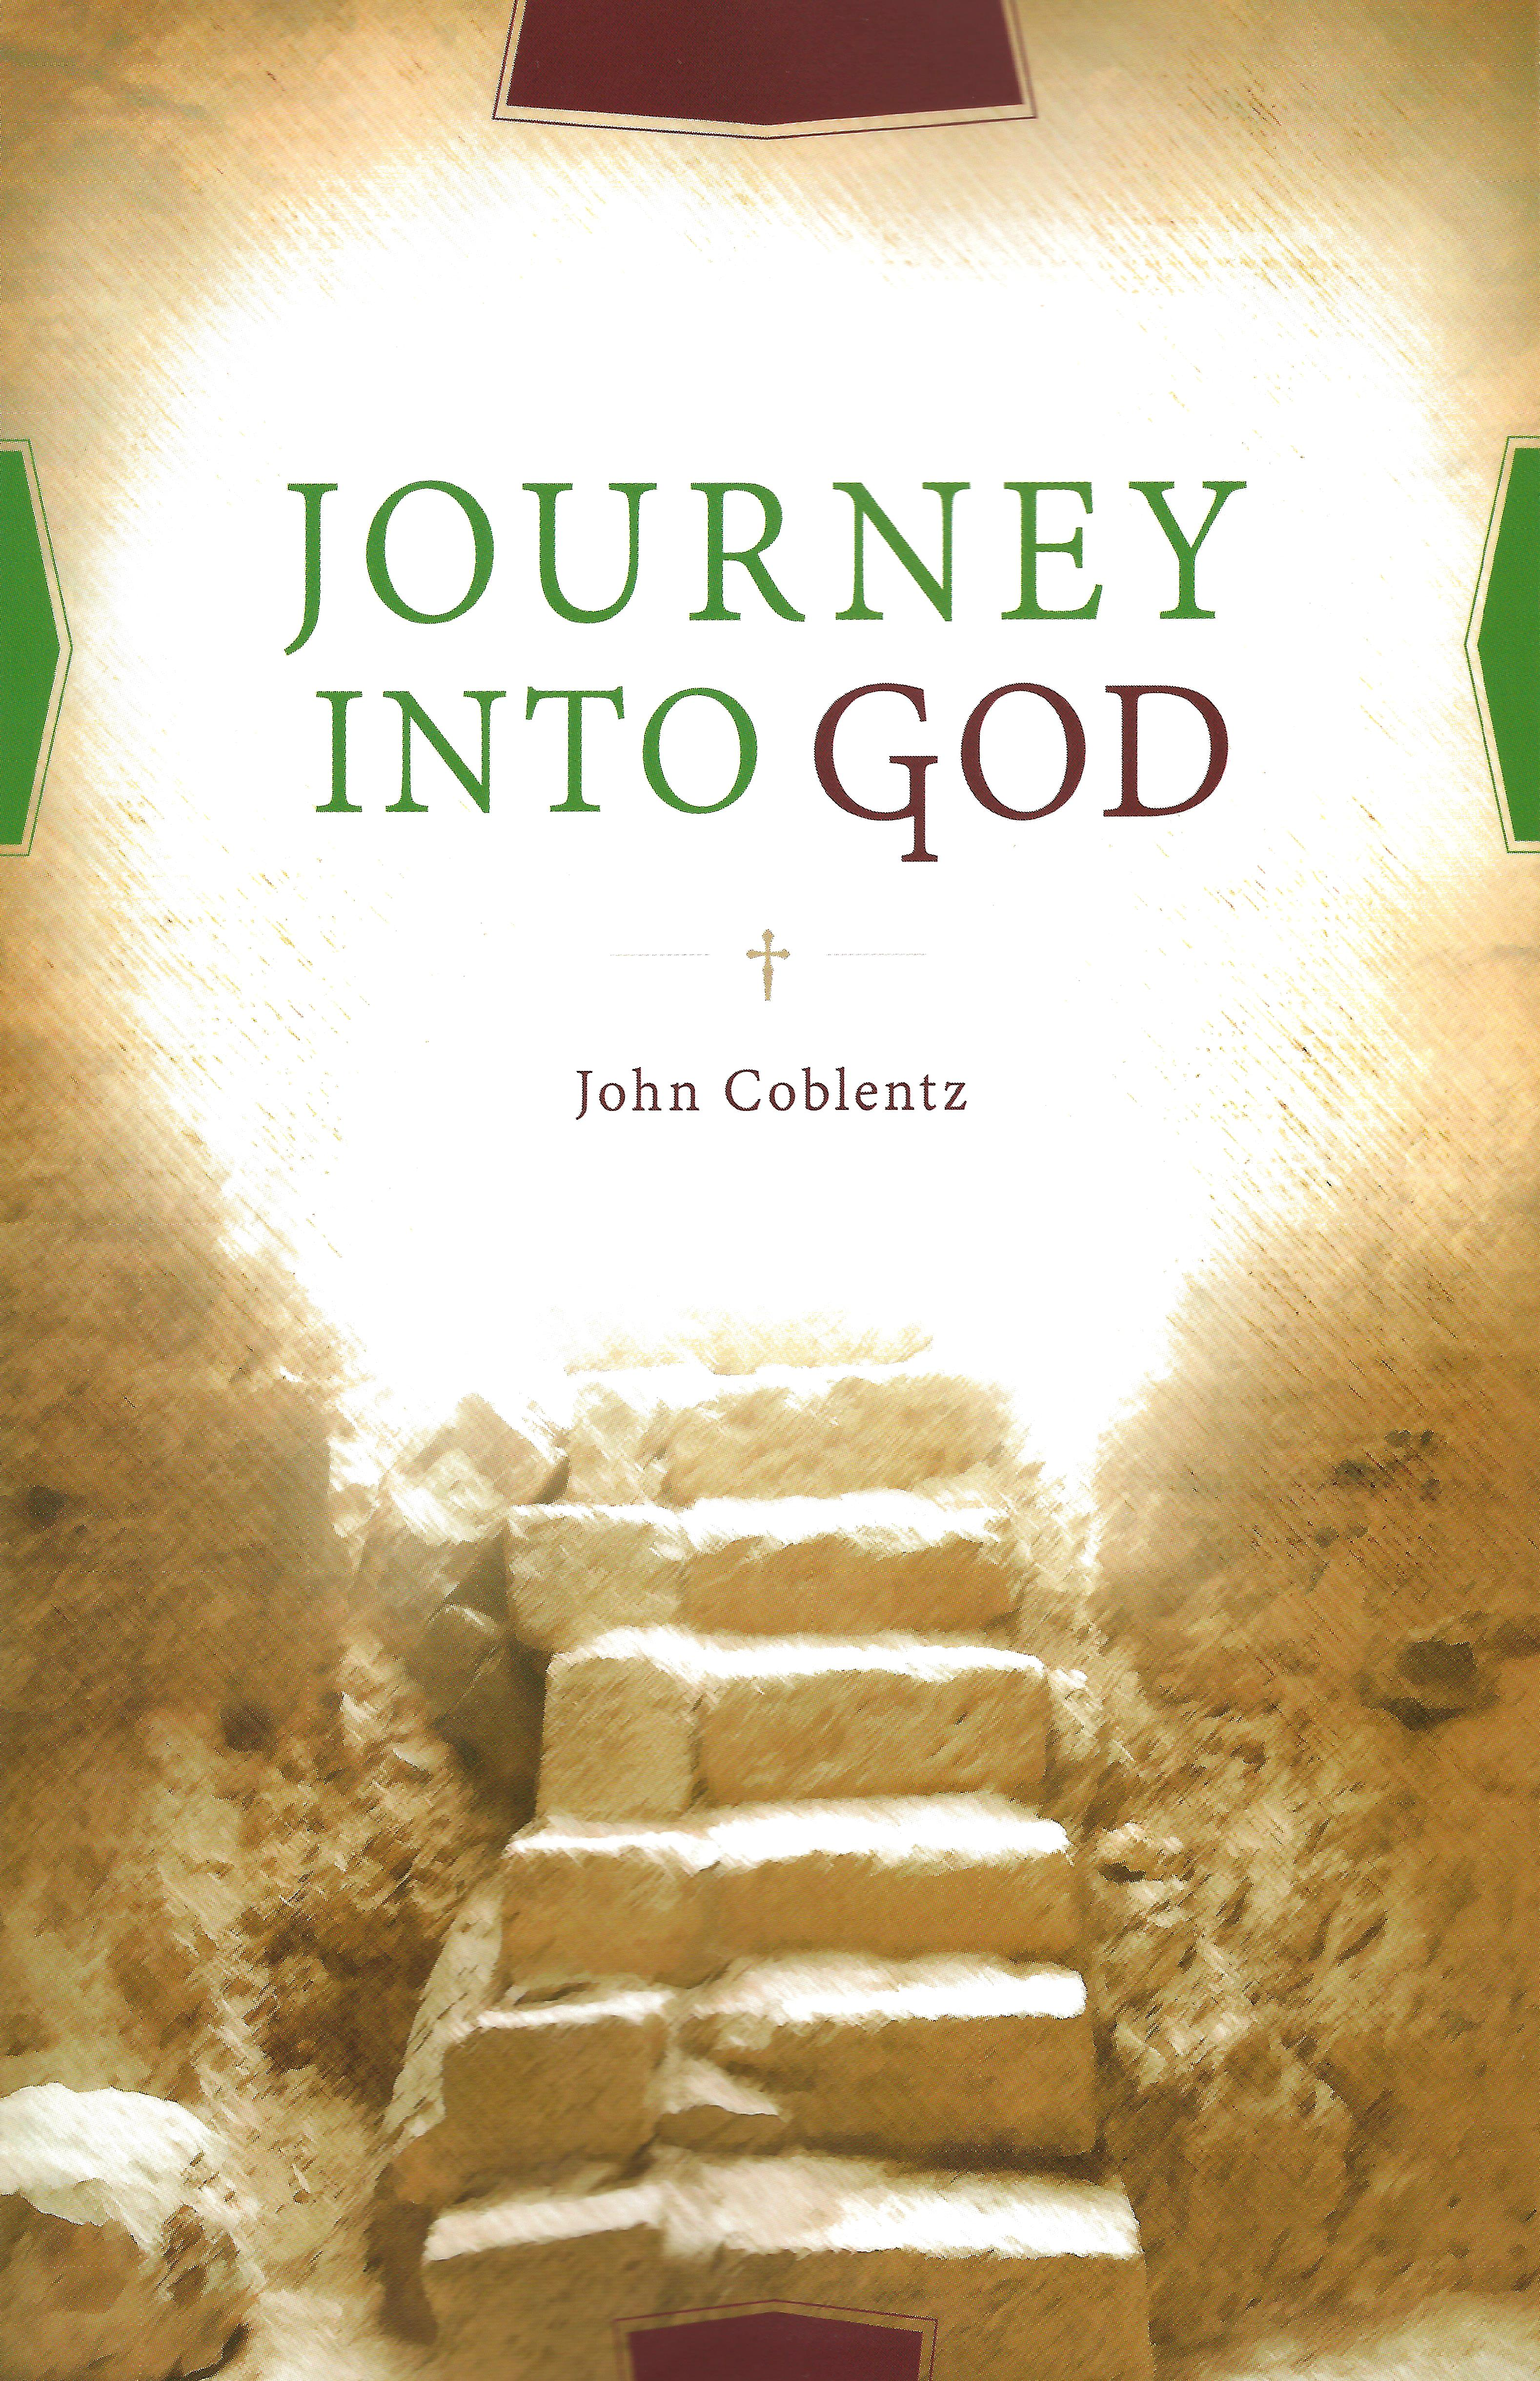 JOURNEY INTO GOD John Coblentz